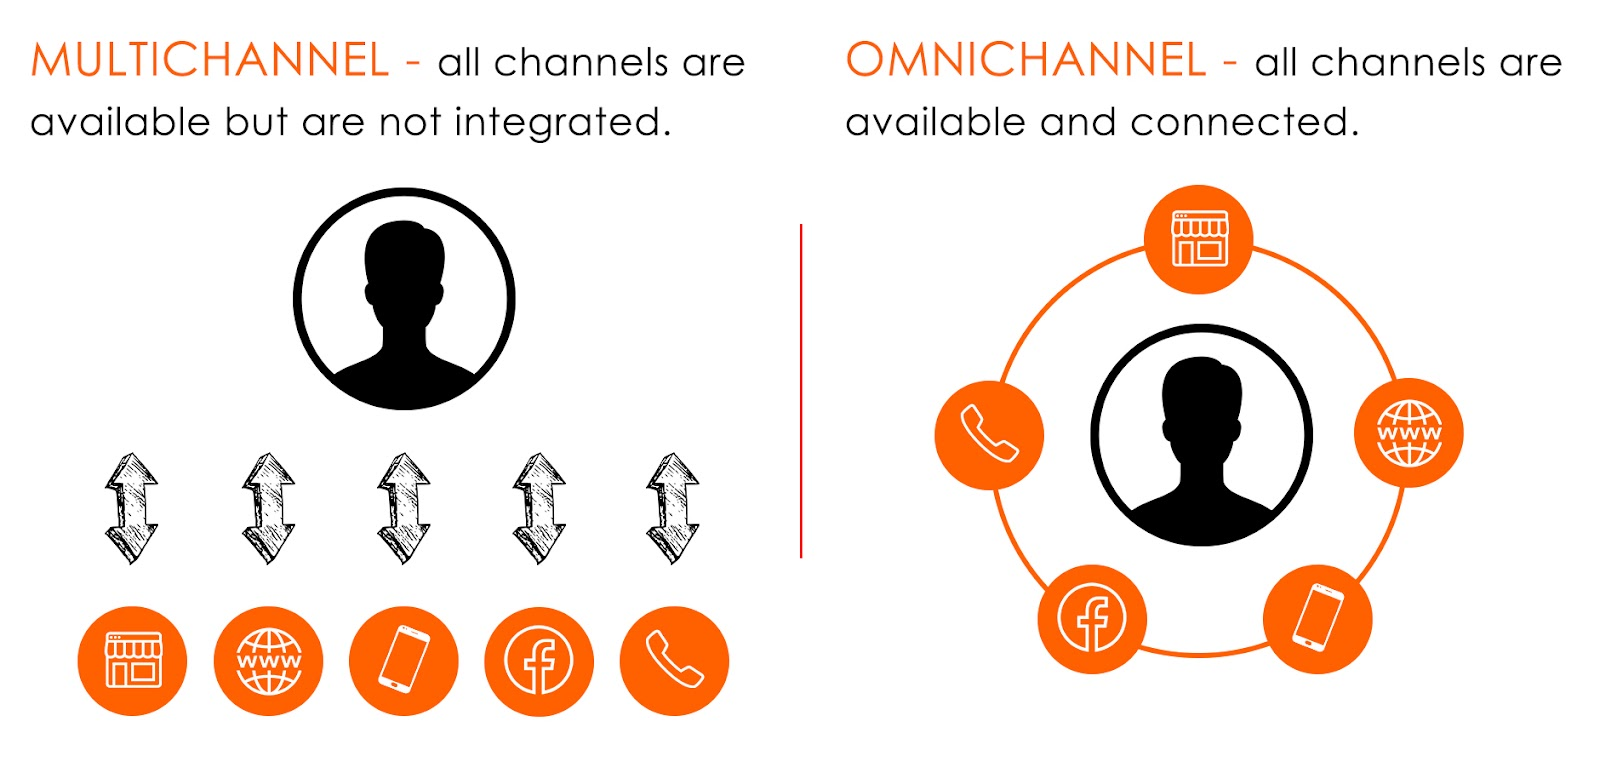 Graphic explaining the difference between multichannel marketing and omnichannel marketing